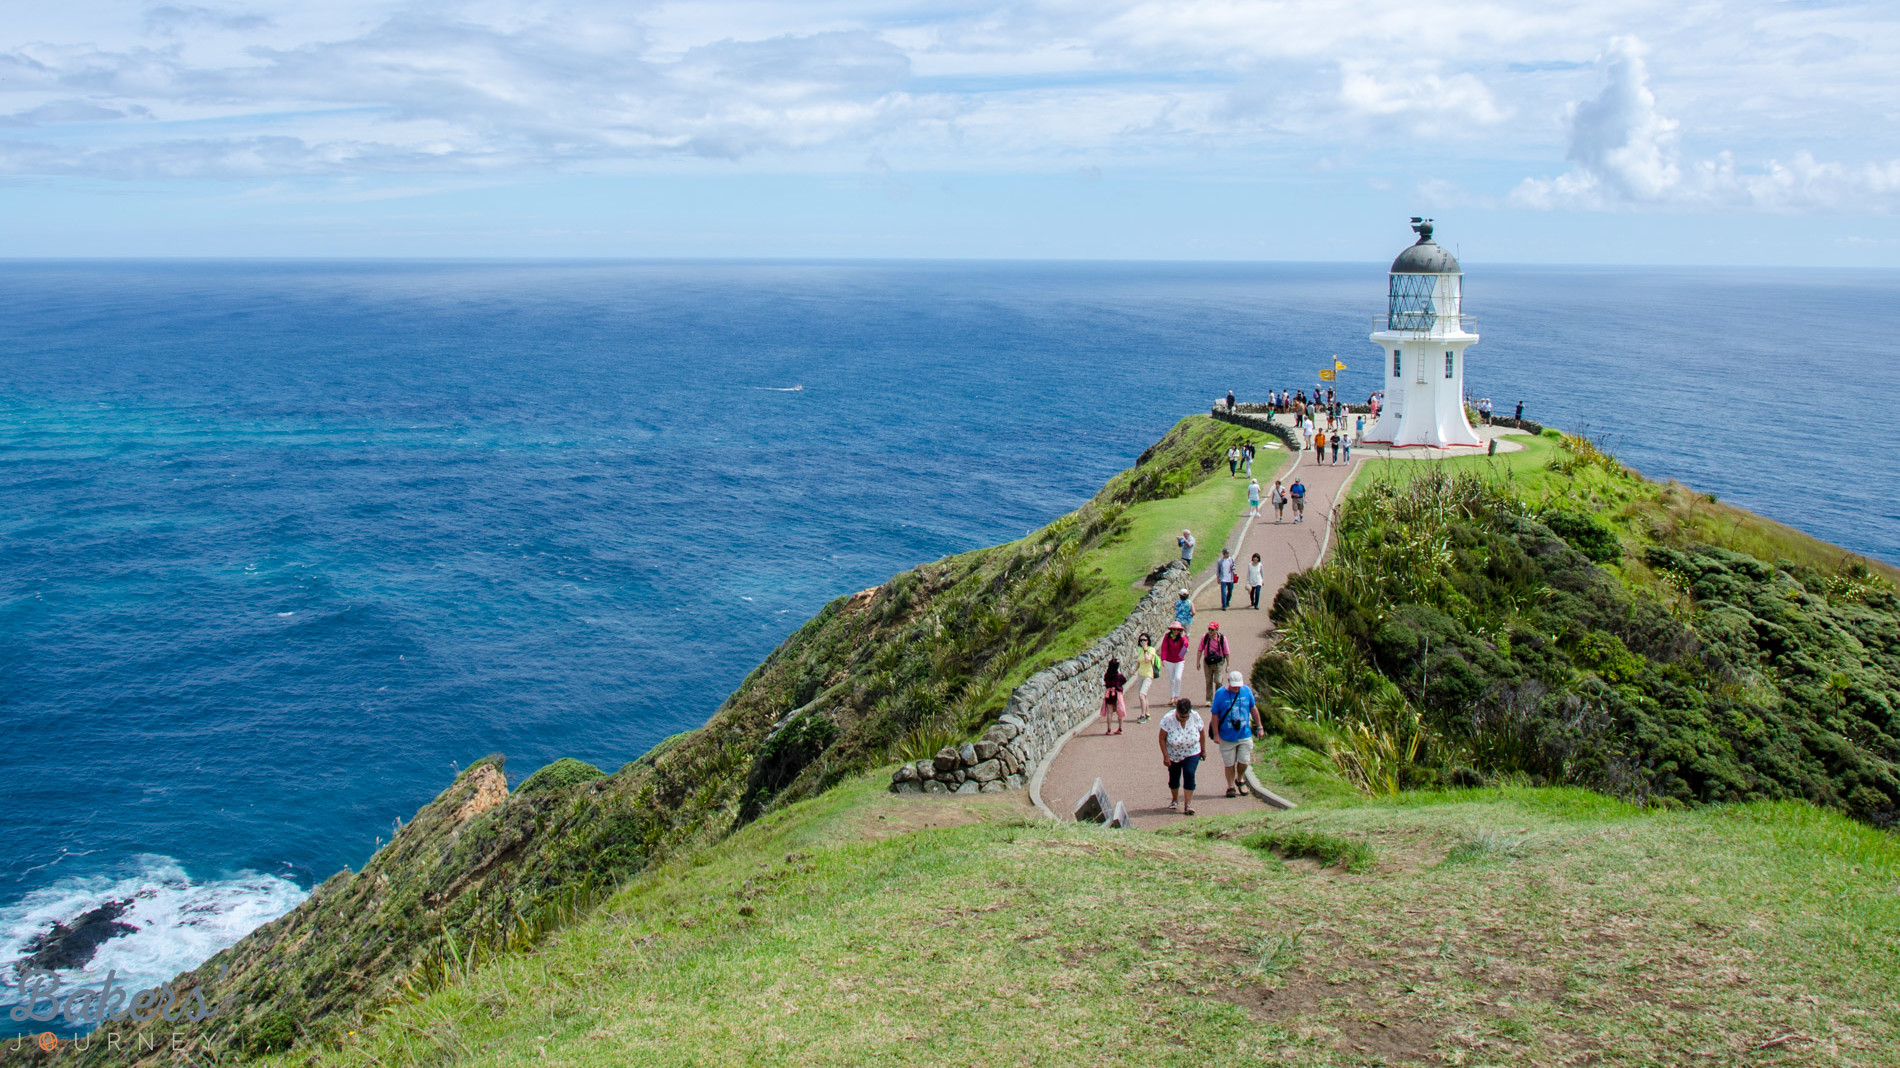 Cape Reinga Tour – Where Two Oceans Meet